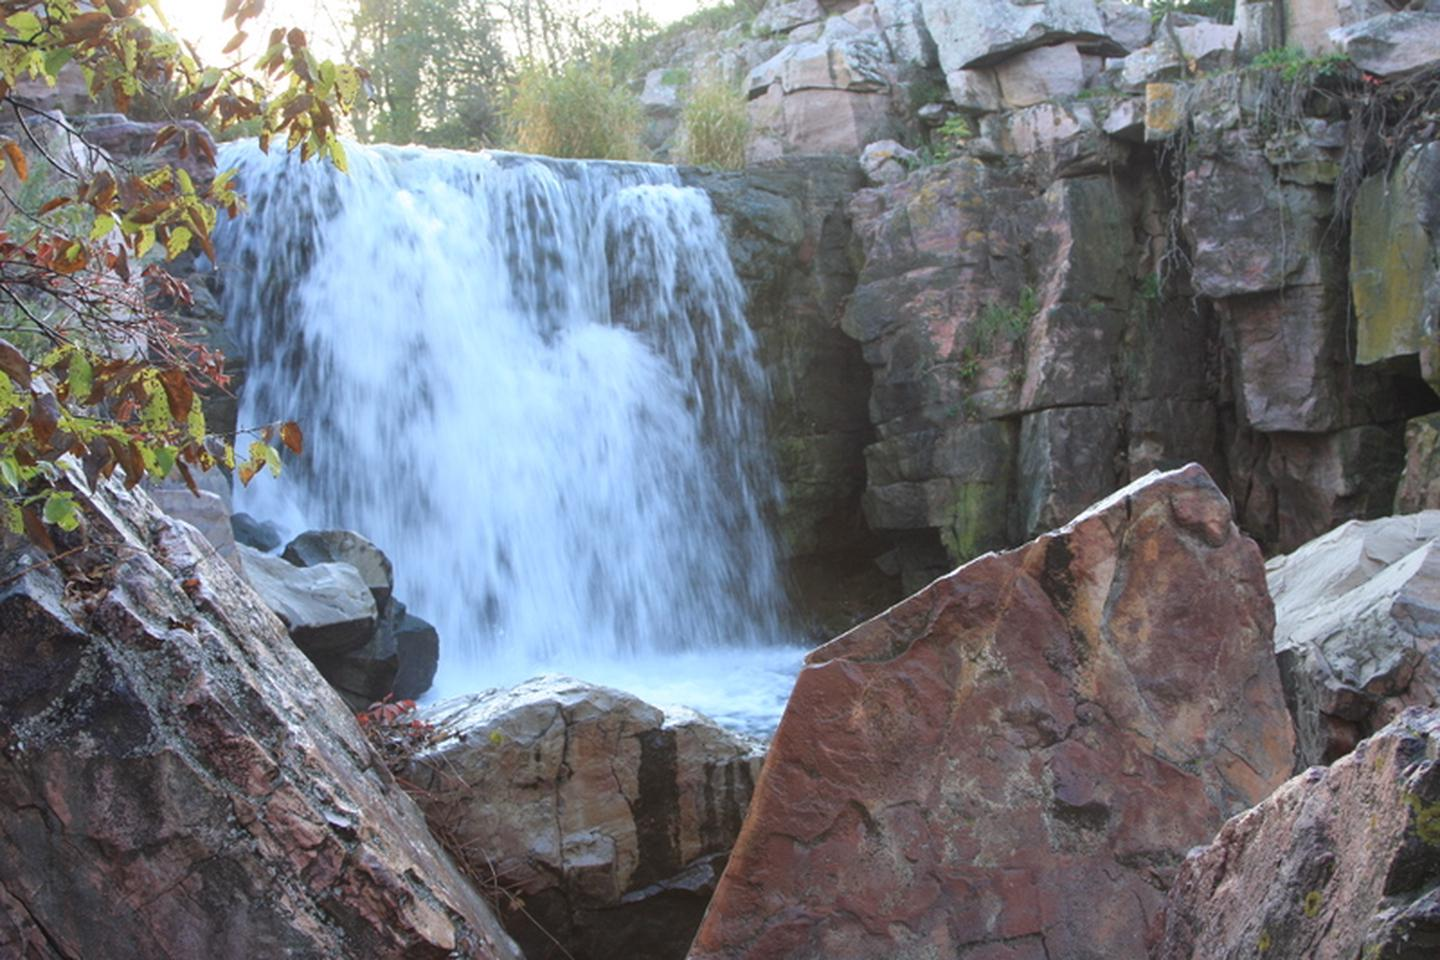 Interp_CircleTrail-WinnewissaFalls_3-2008Winnewissa Falls, one of many scenic sites visitors can see from the Monument Circle Trail.